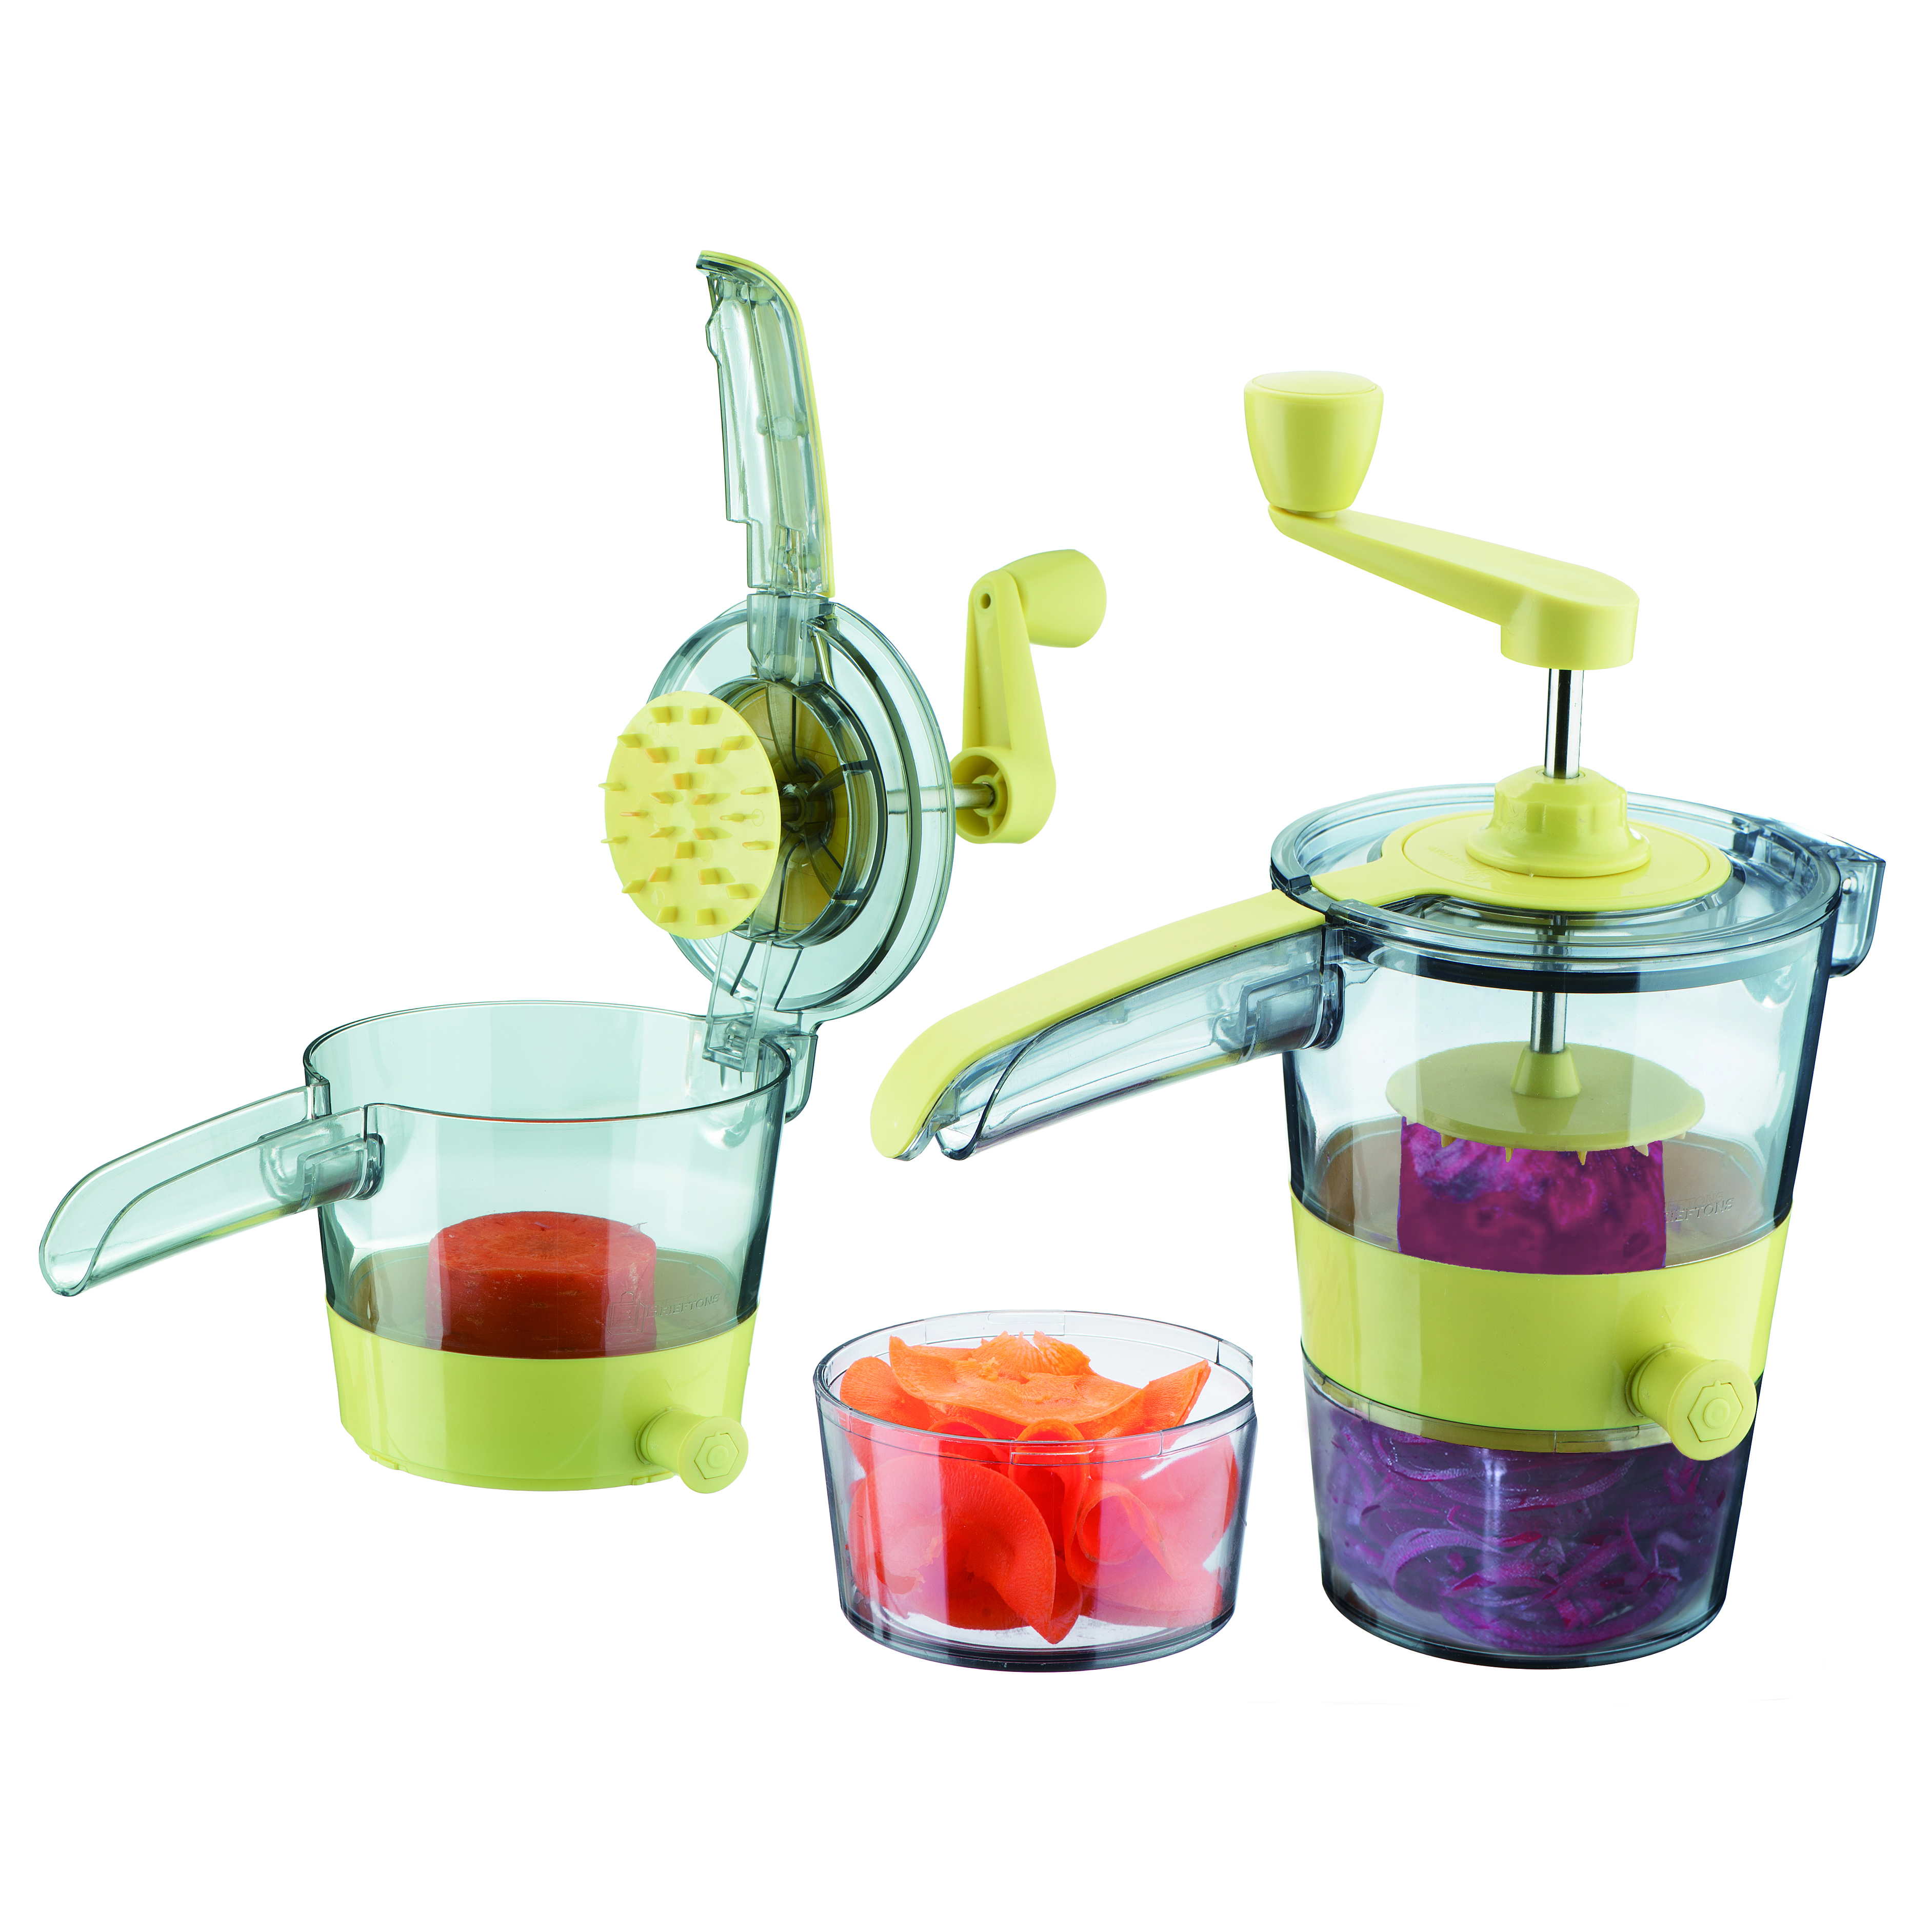 Brieftons InstantVeg Spiralizer Review  (plus giveaway)